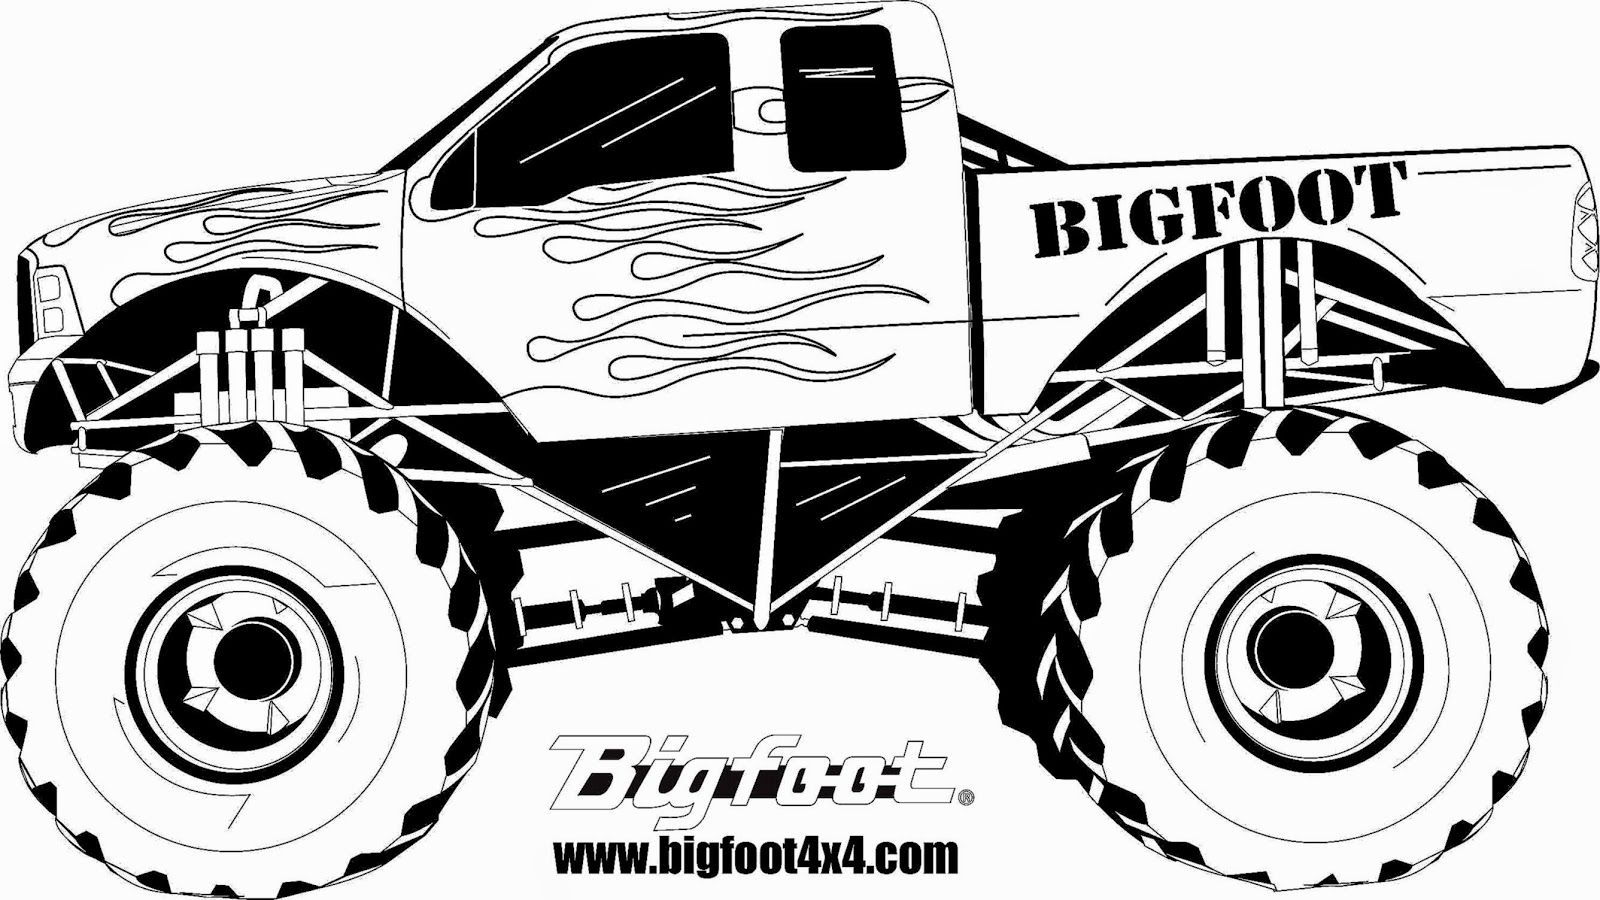 Adult Beauty Free Coloring Pages Monster Trucks Gallery Images cute free coloring pages monster jam trucks printable images